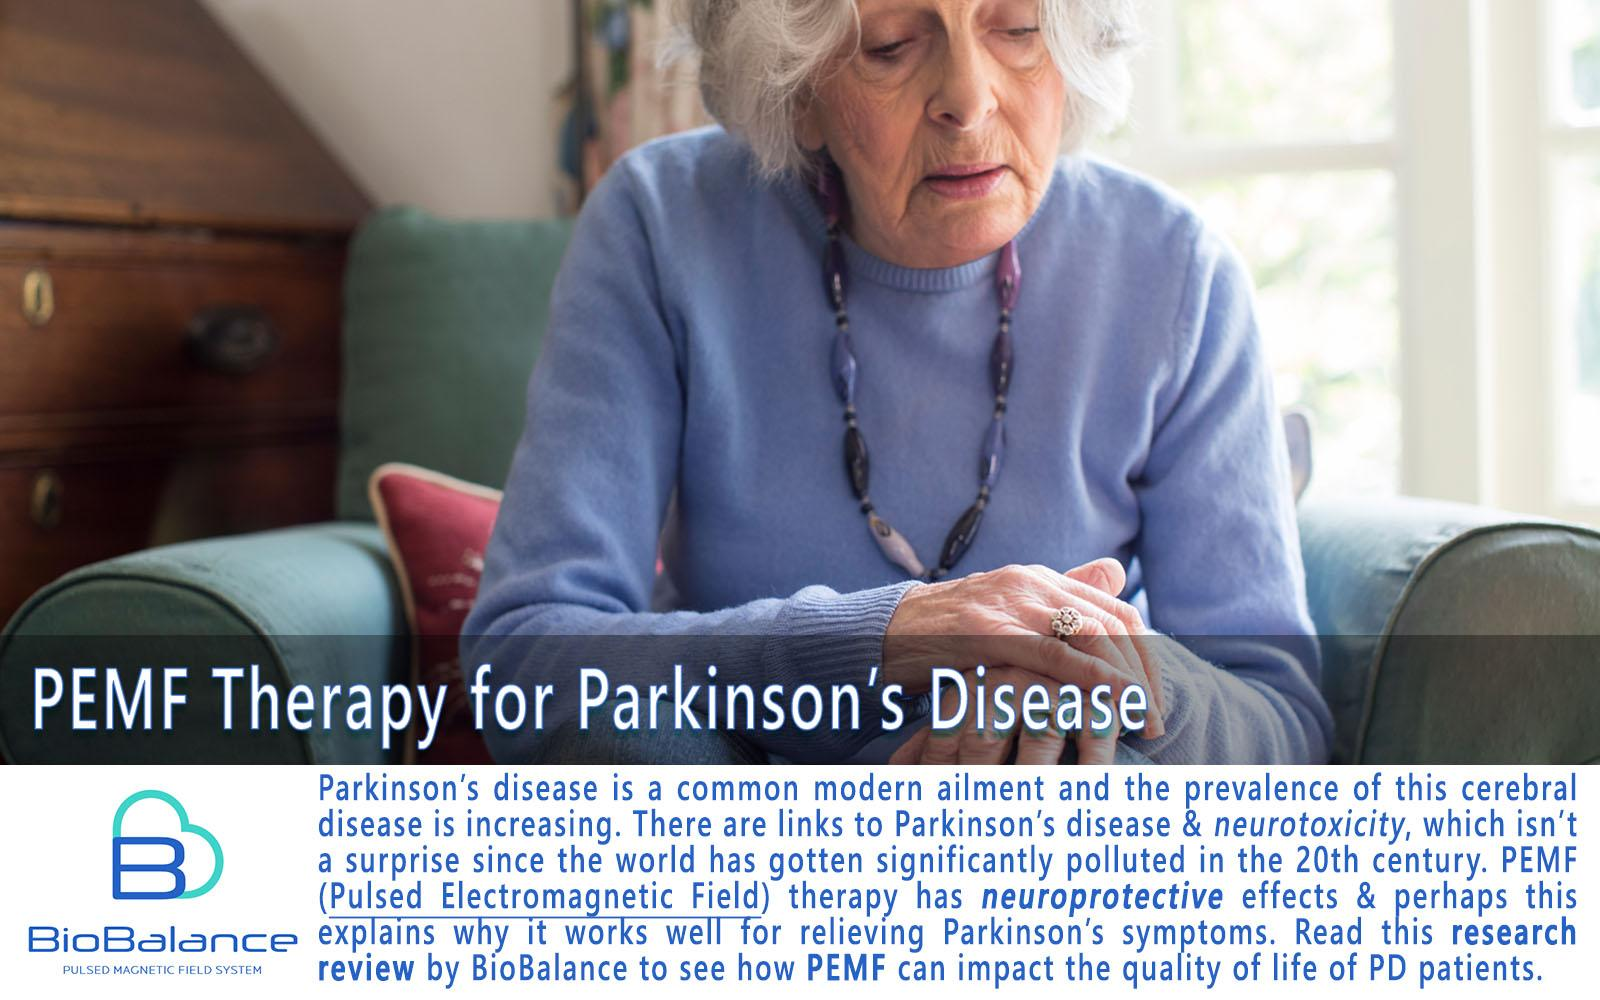 PEMF therapy For Parkinsons Disease